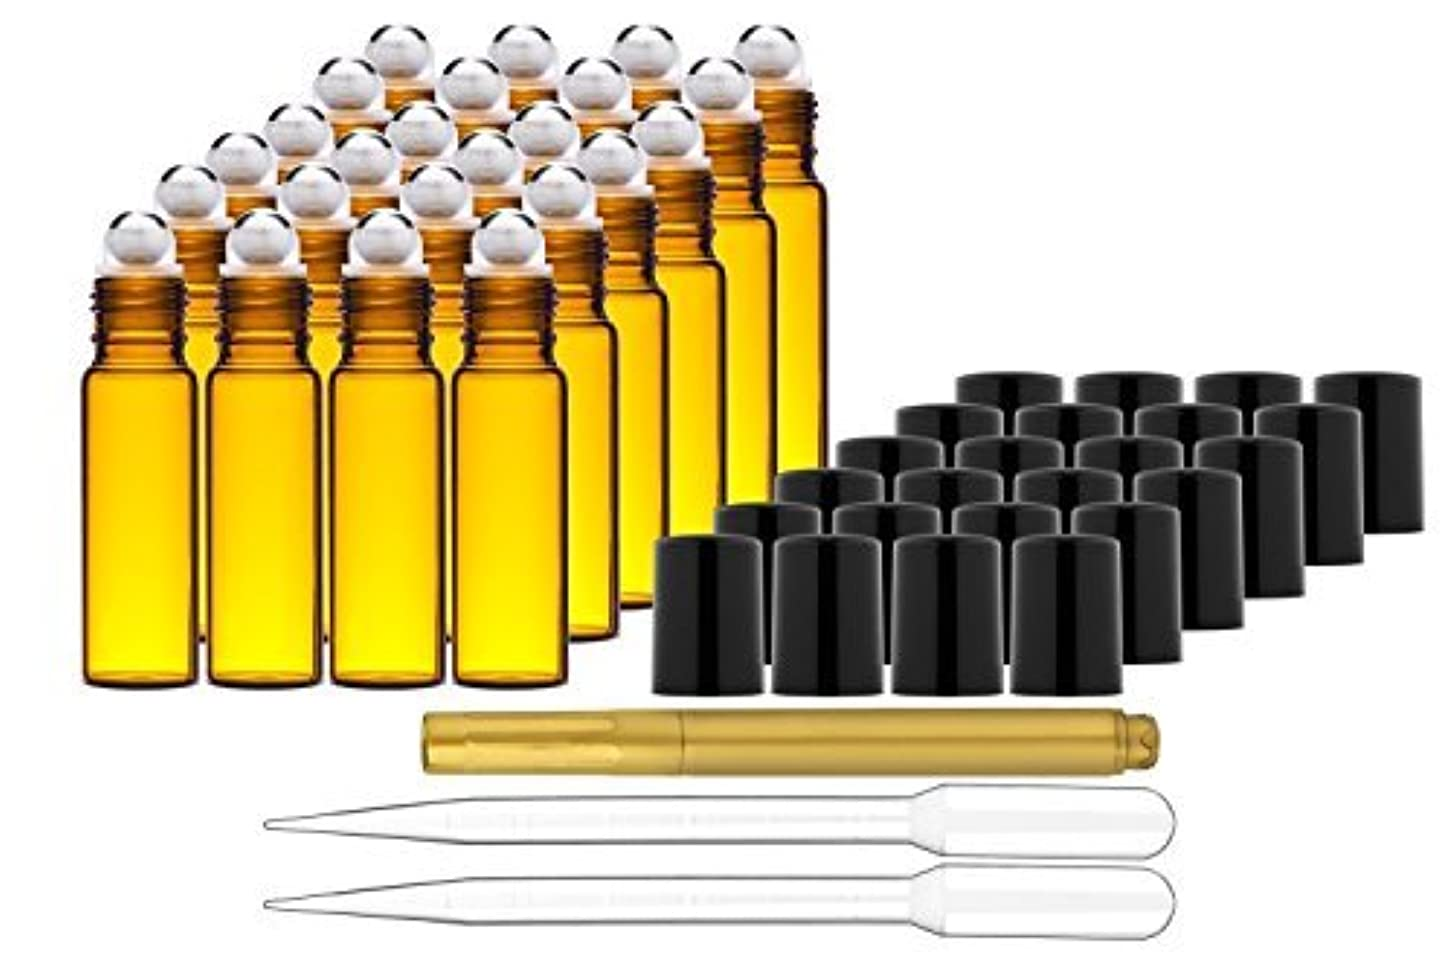 Culinaire 24 Pack Of 10 ml Amber Glass Bottles with Stainless Steel Roller Balls/Caps & (2x) 3 ml Droppers with...